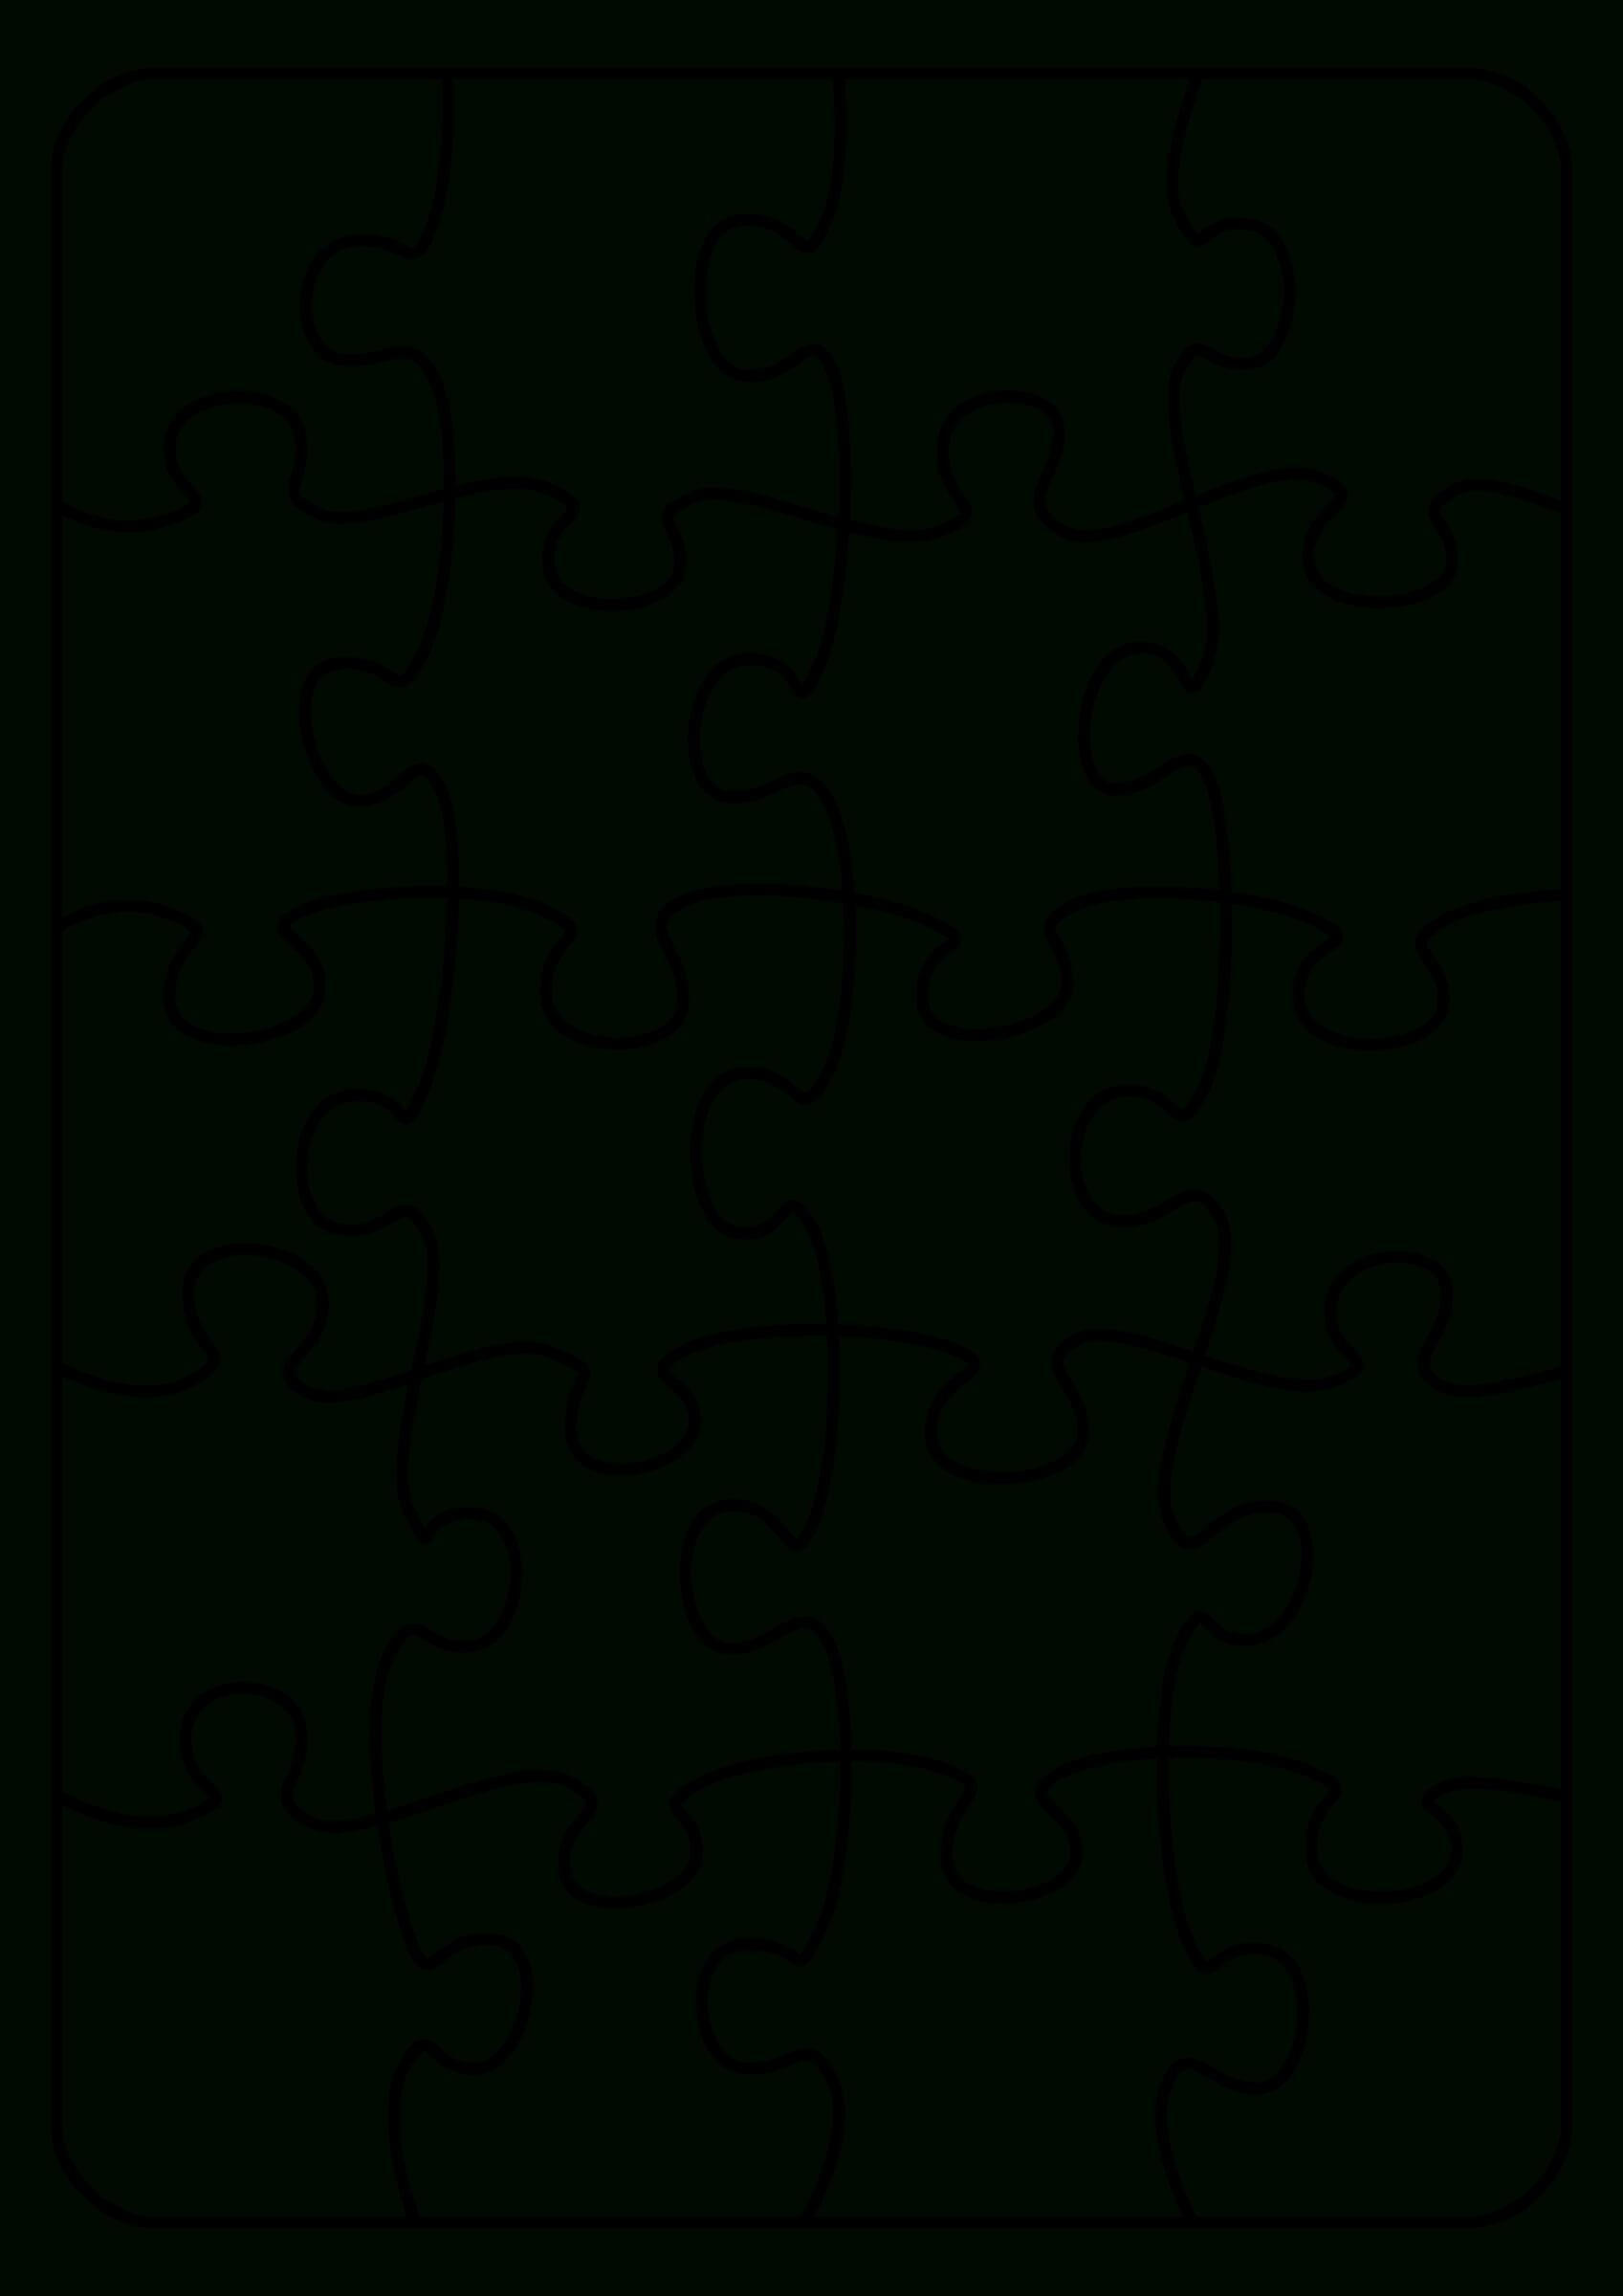 Jigsaw Puzzle Template. Endless Possibilities! Use With inside Jigsaw Puzzle Template For Word